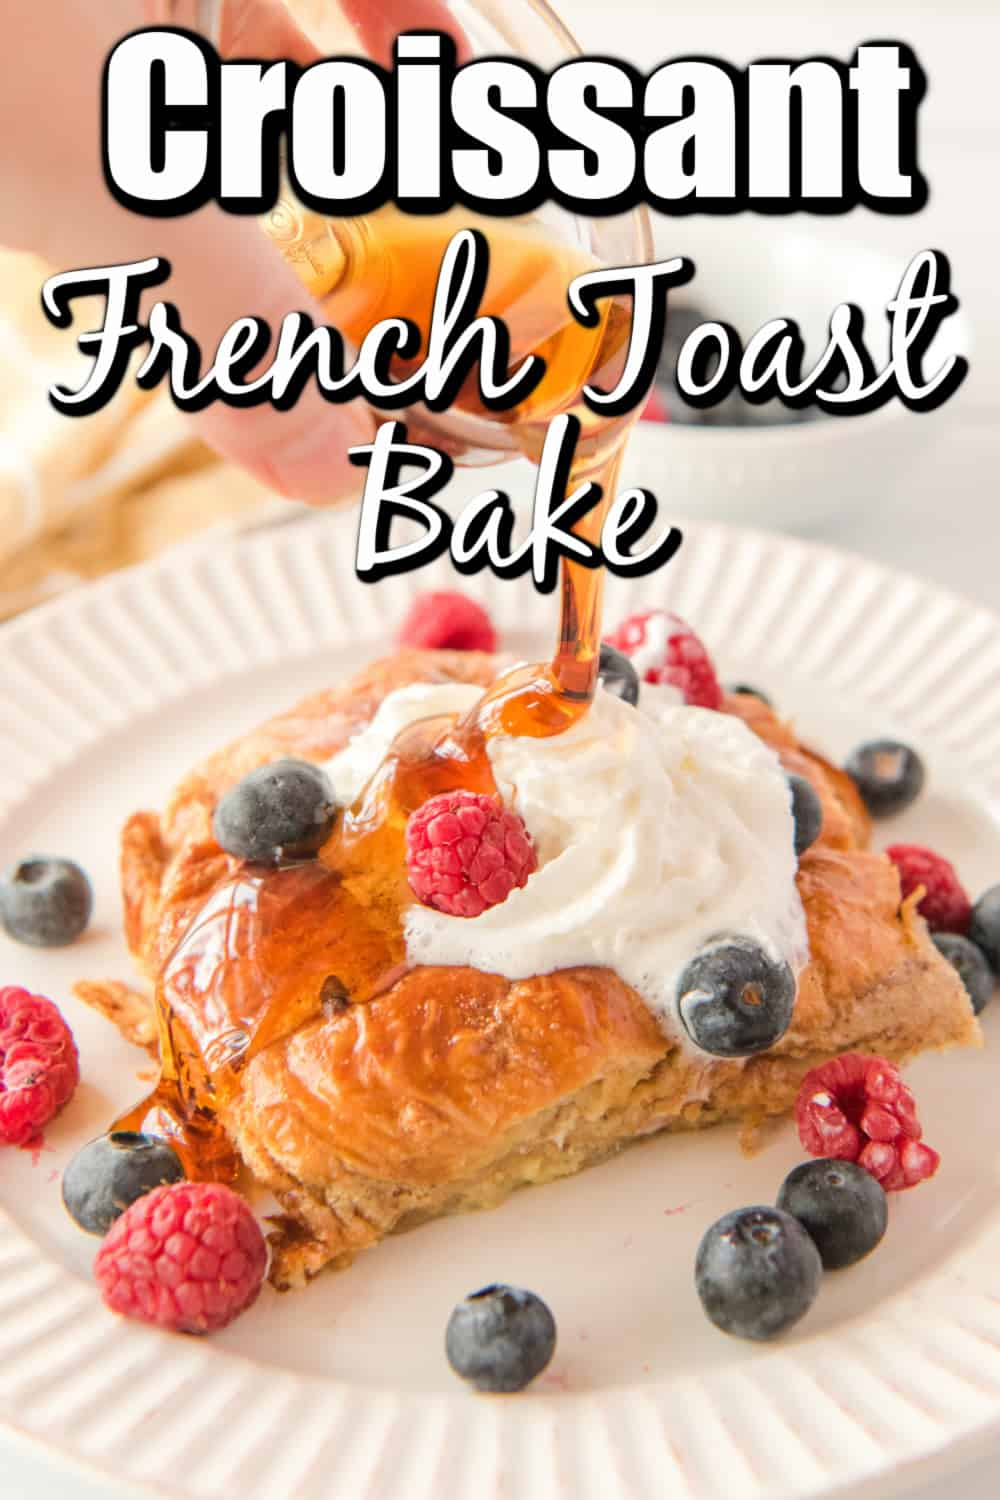 Croissant French Toast Bake Pin